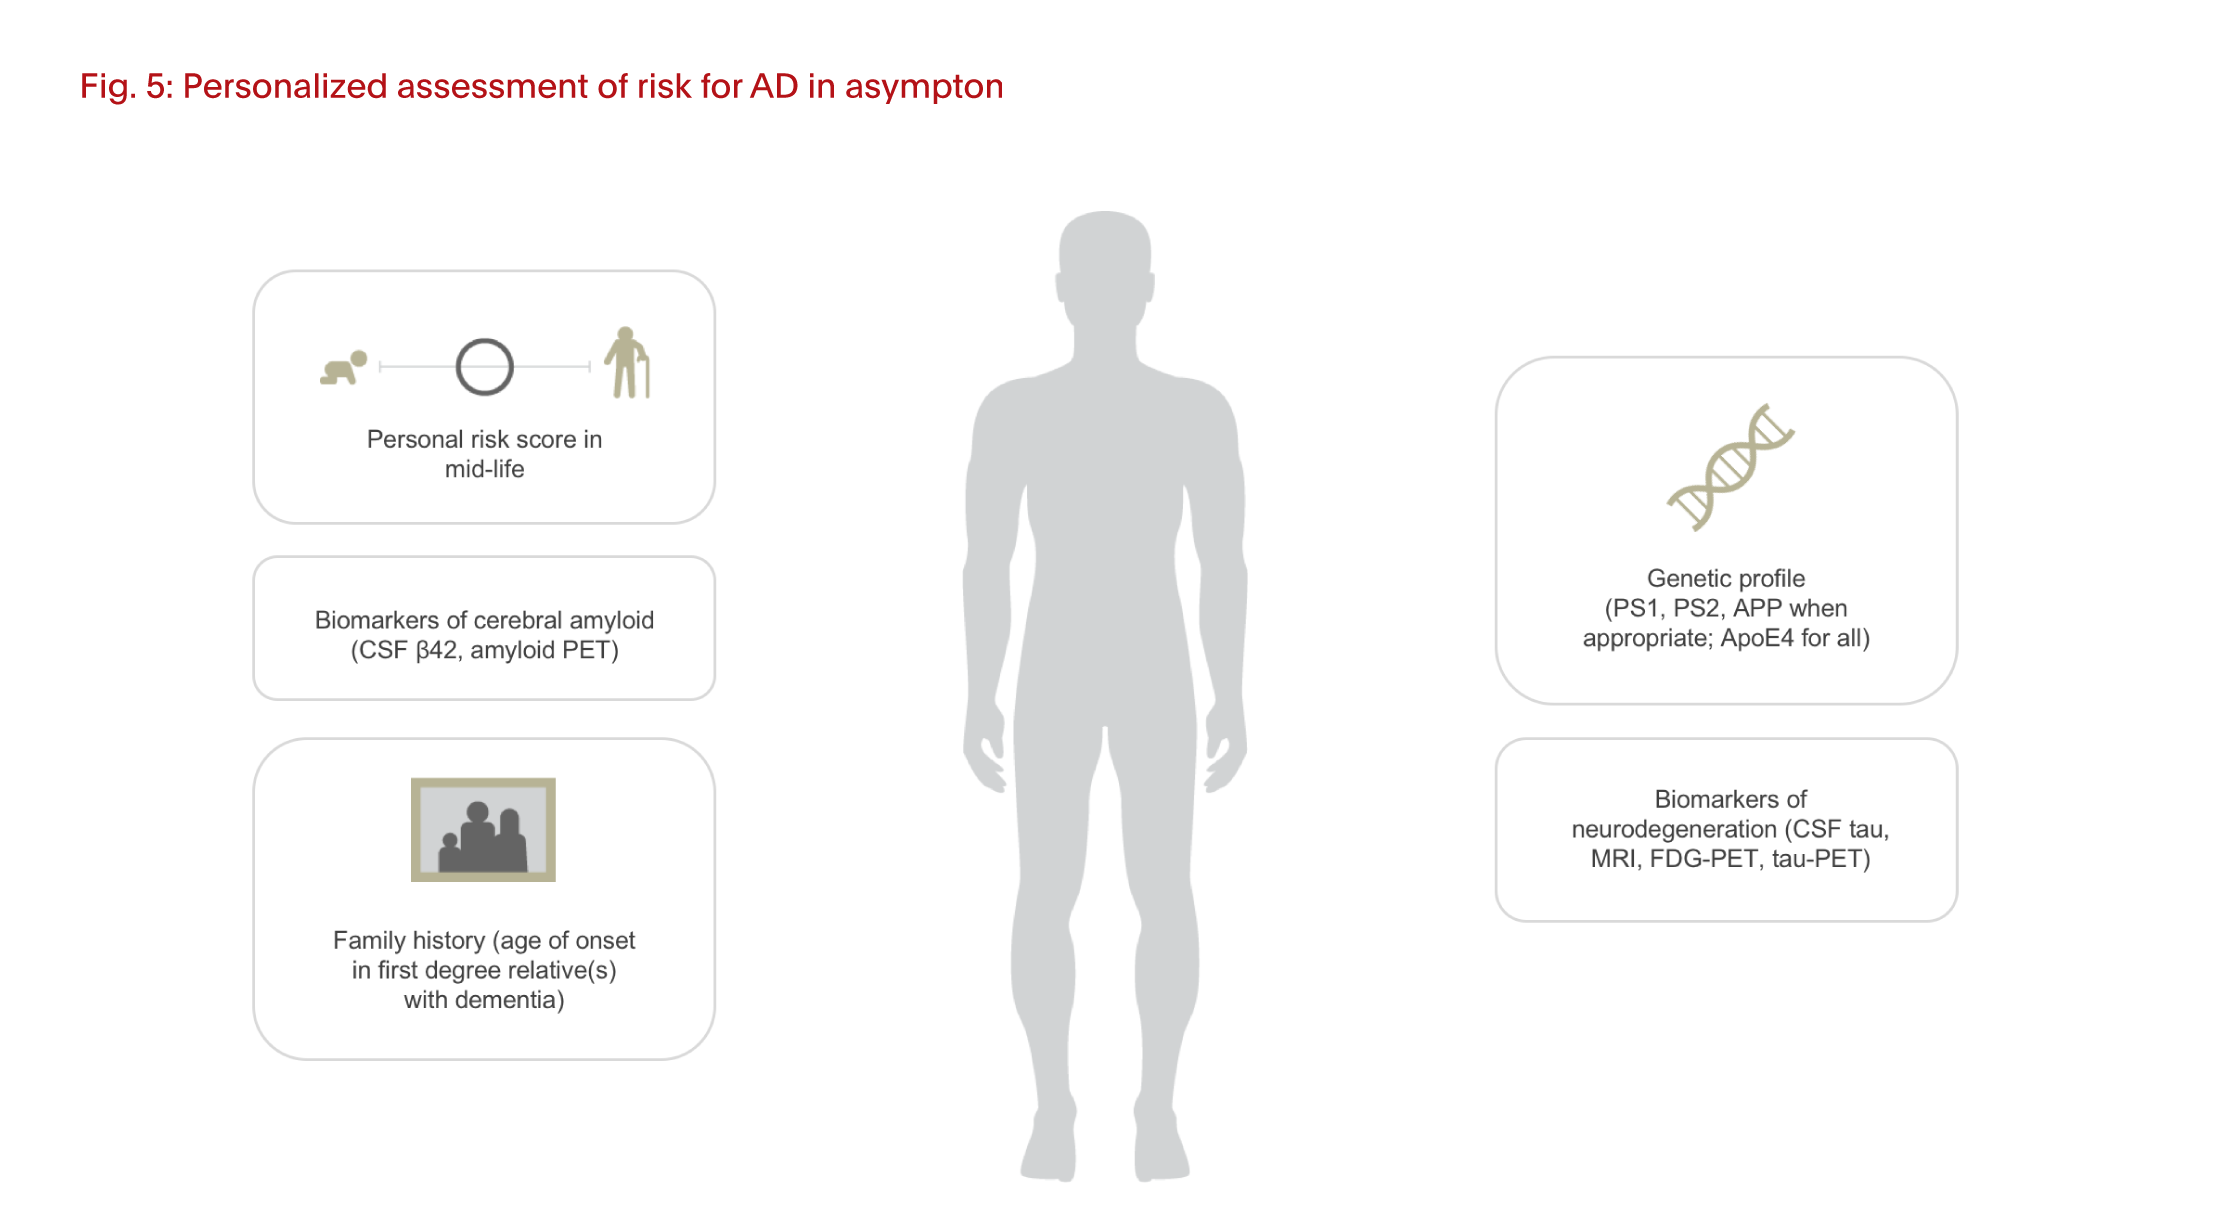 Personalized assessment of risk for AD in asymptomatic persons